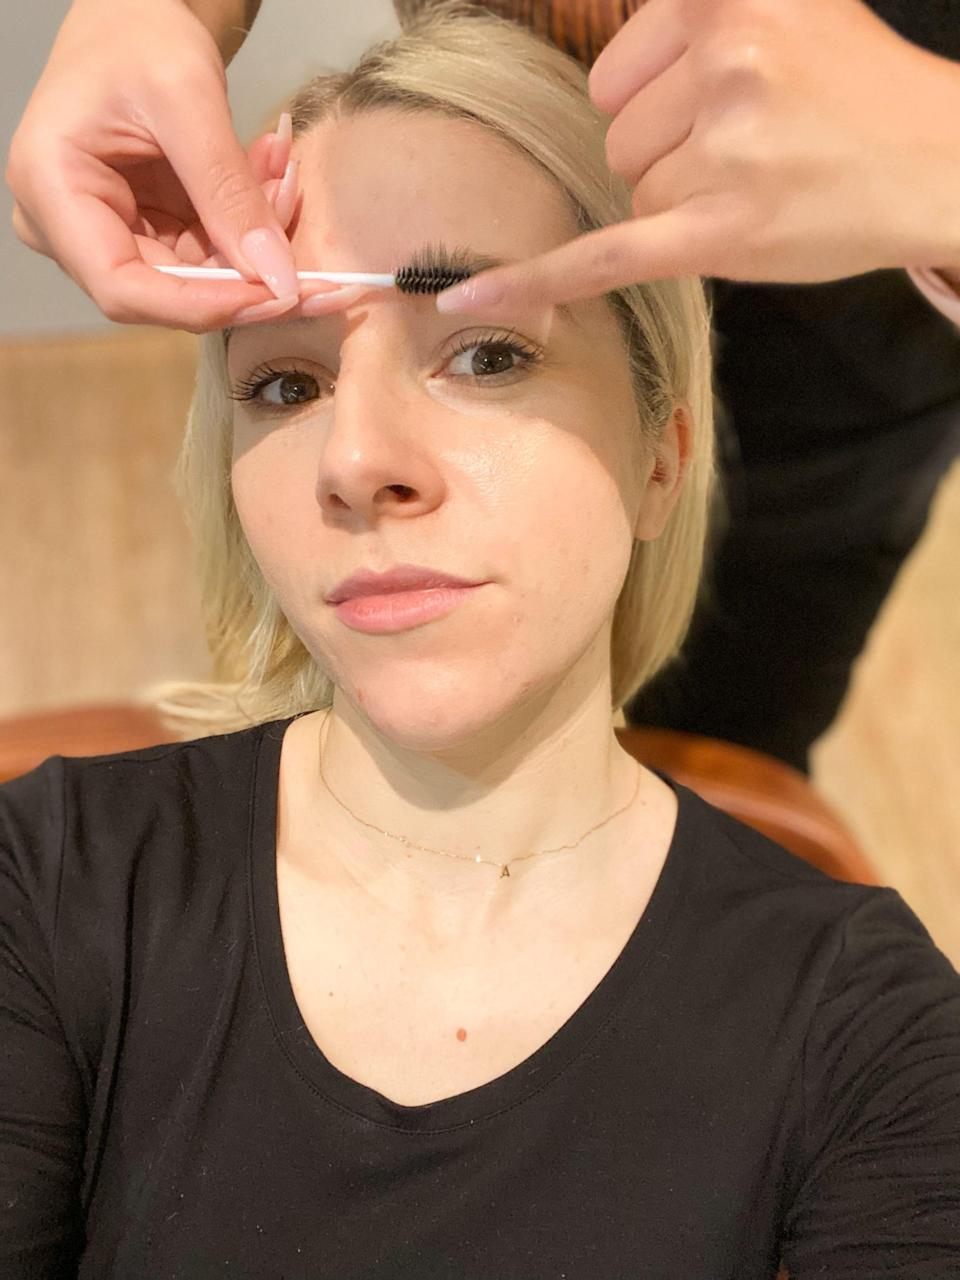 <p>The first step of the brow lamination process is to fix the hairs in place using brow lamination glue. It feels like a thick adhesive and is literally sticking your brow hairs into your chosen shape and style - mine were stuck pointing straight upward.</p>